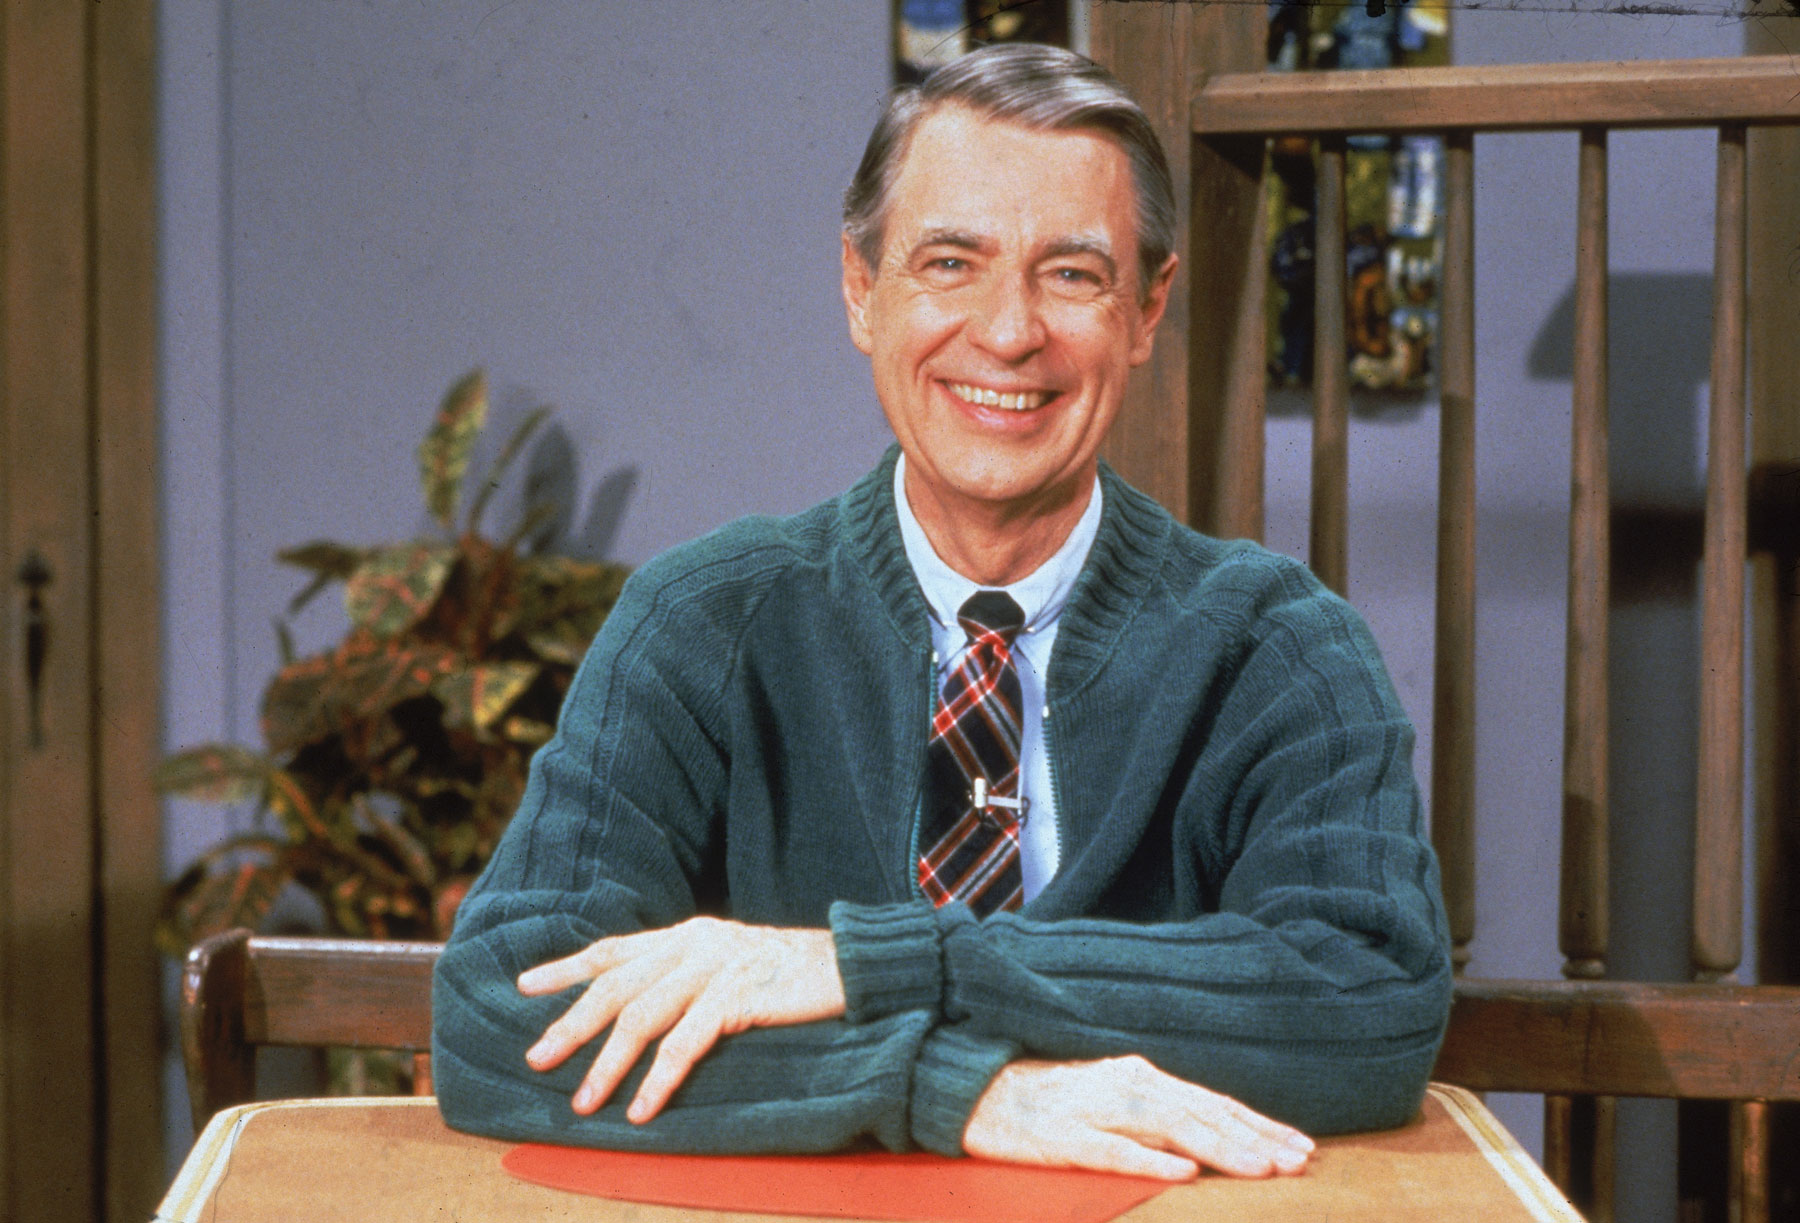 Mr. Rogers wearing a sweater